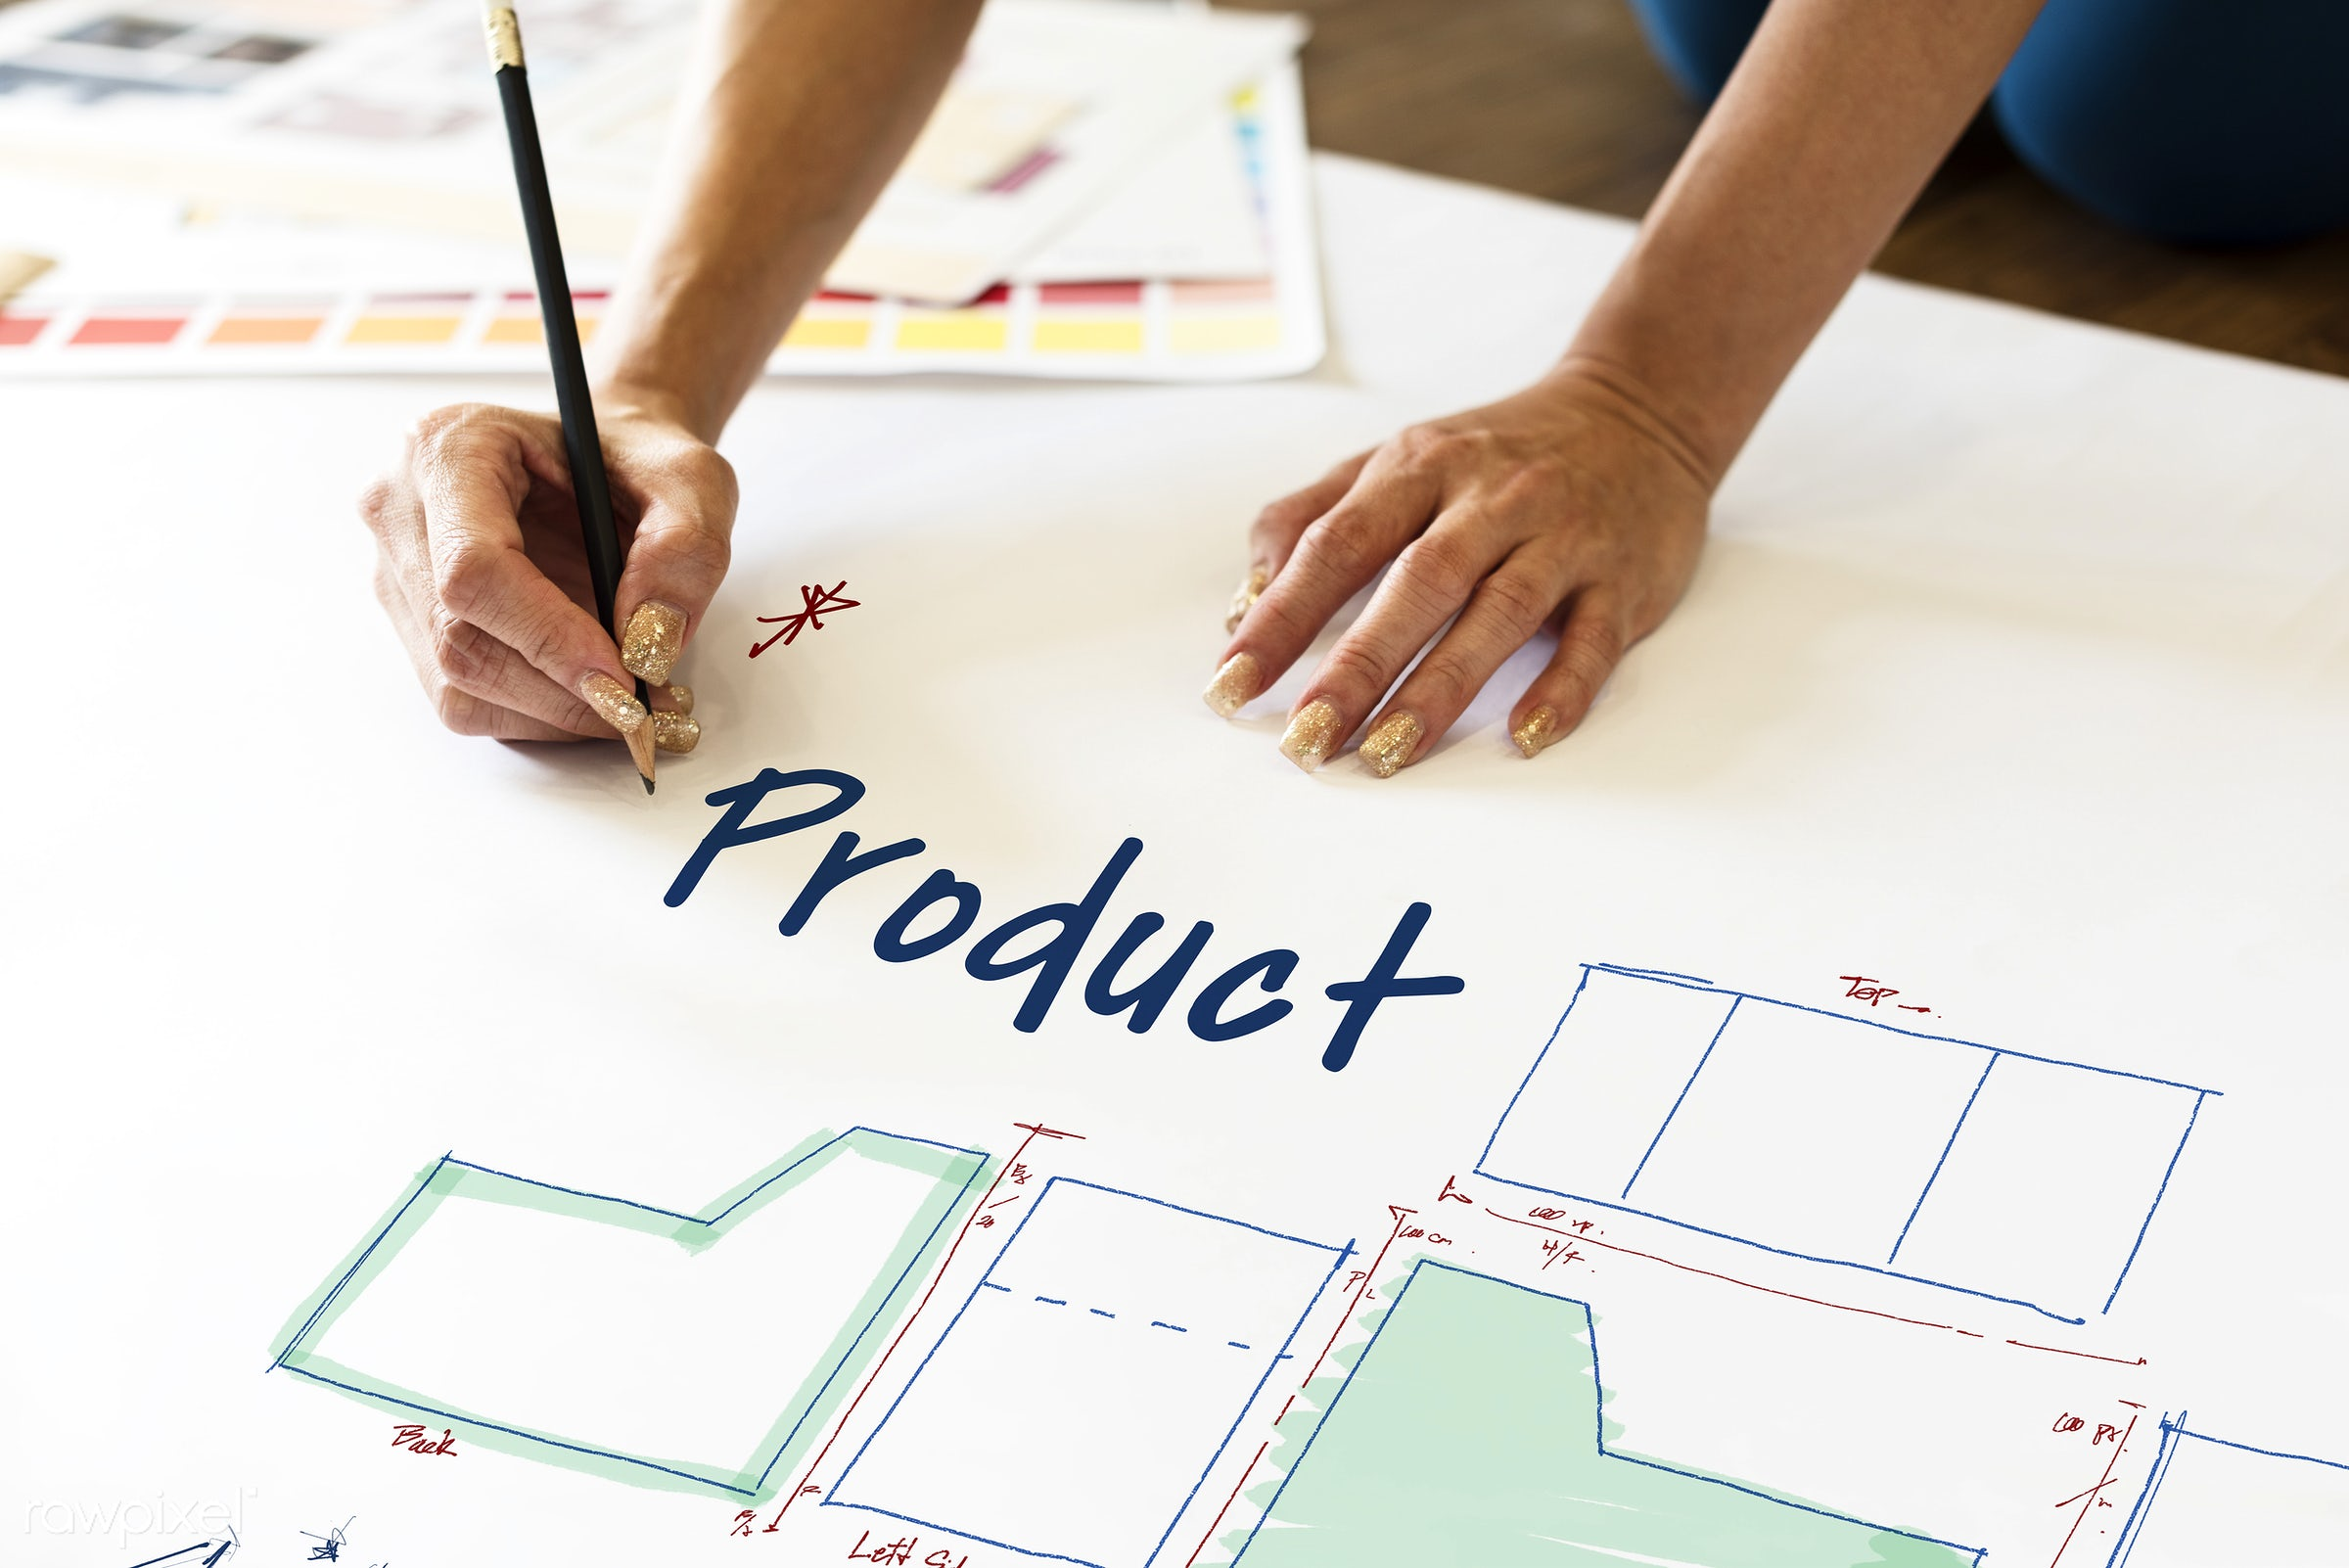 production, art, assemble, assembly line, blue print, business, construction, create, creation, creative, creativity, design...